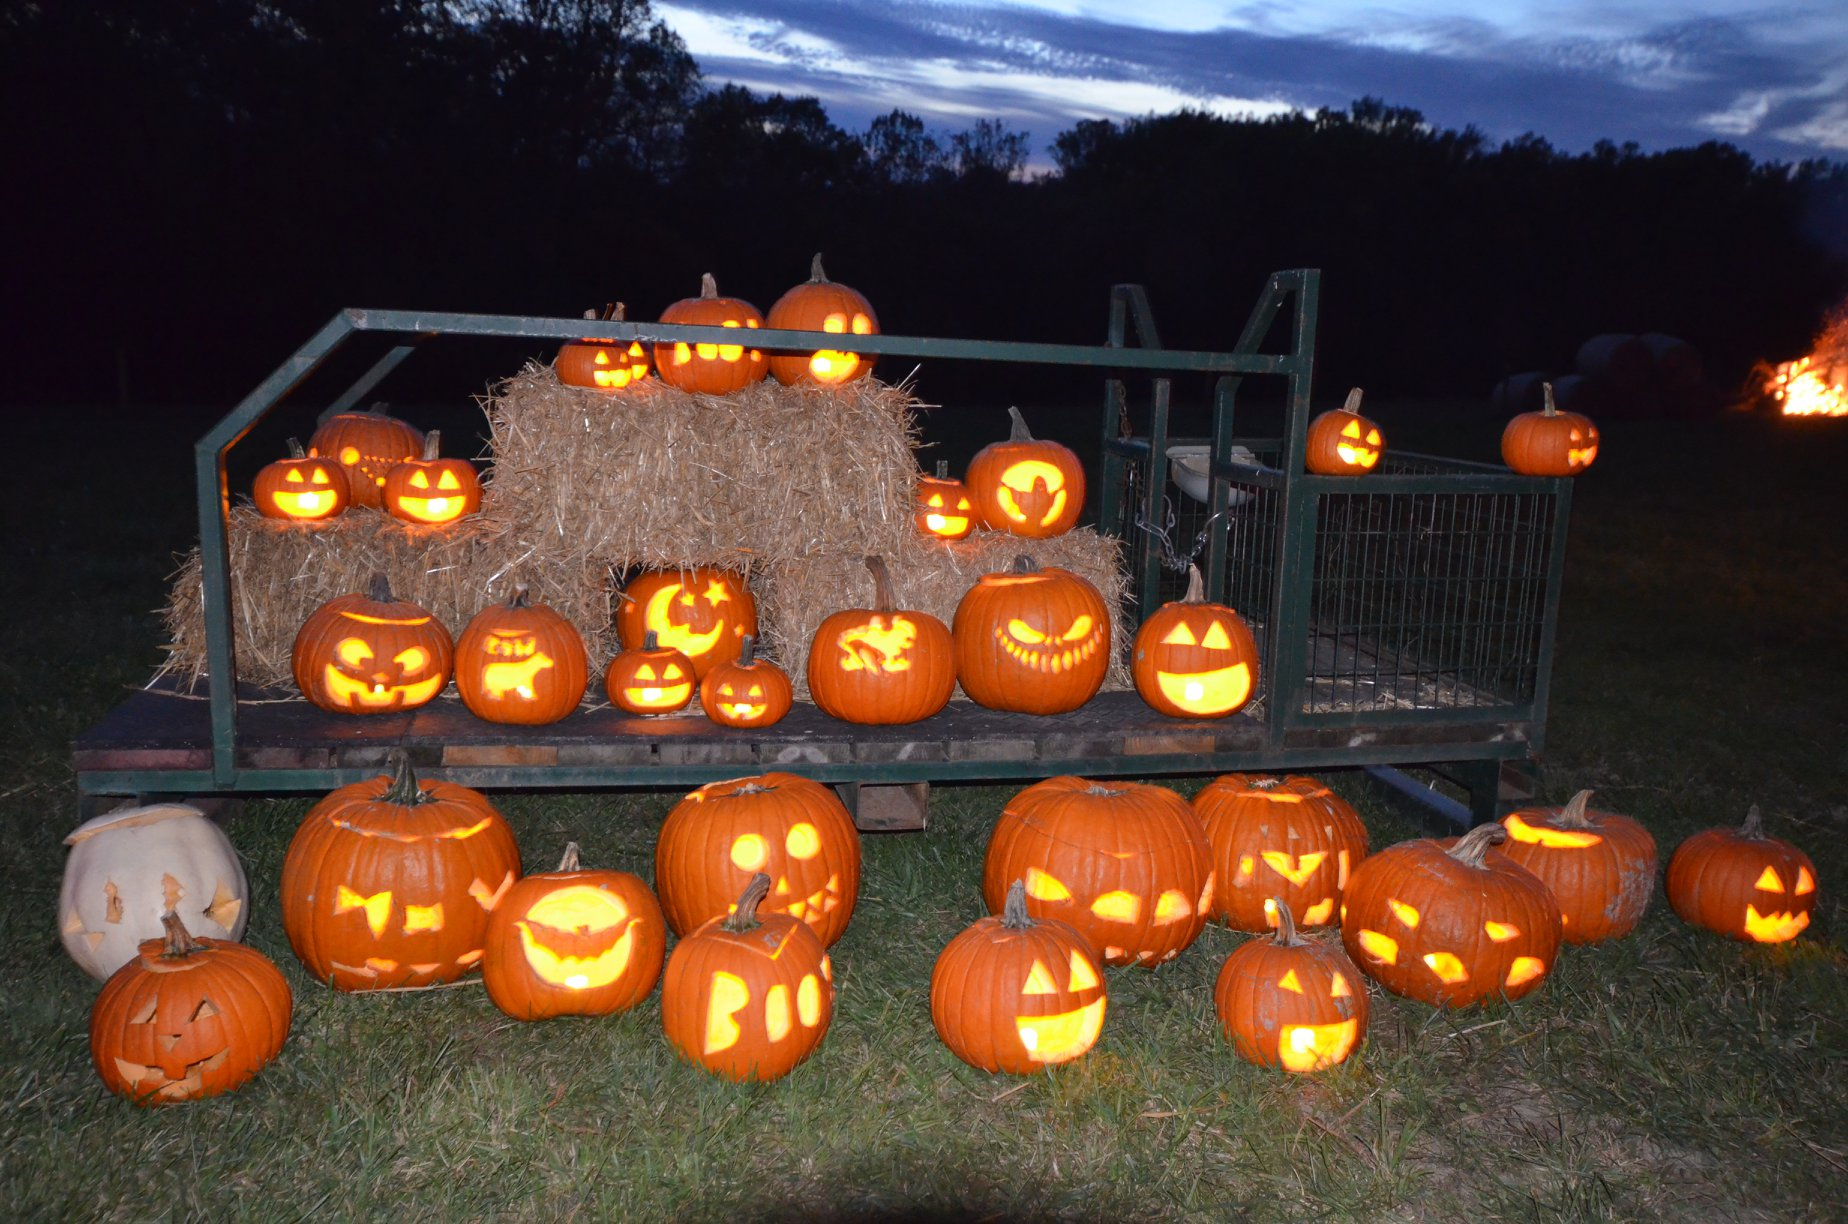 Halloween Events 2020 Near Me Maryland 2020 EVENT: Trail of Jack O Lanterns (October 16 17, 23 24, 30 31